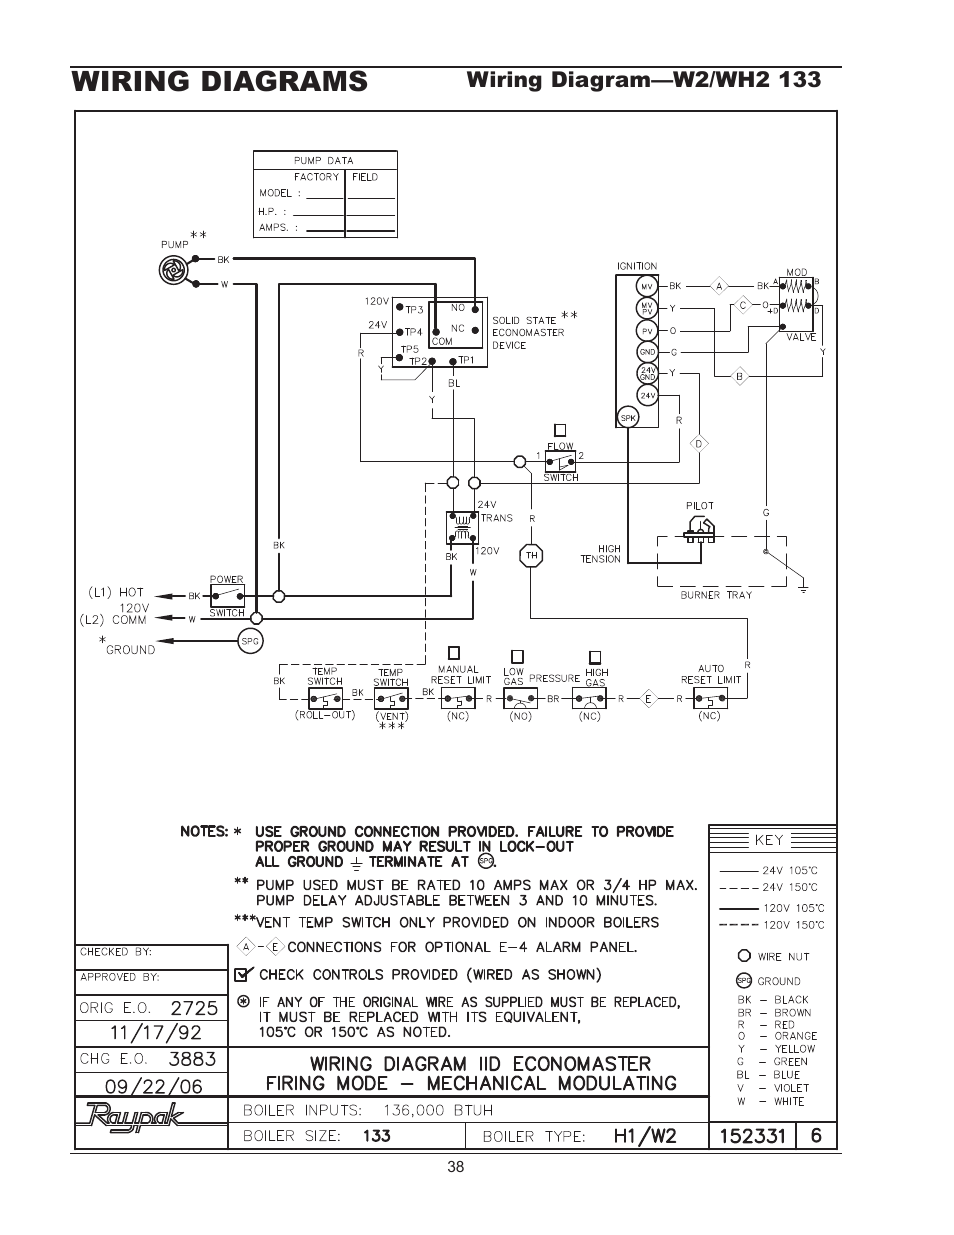 wiring diagrams wiring diagram wh1 0181 0261 raypak 1334001 wiring diagrams wiring diagram wh1 0181 0261 raypak 1334001 user manual page 38 52